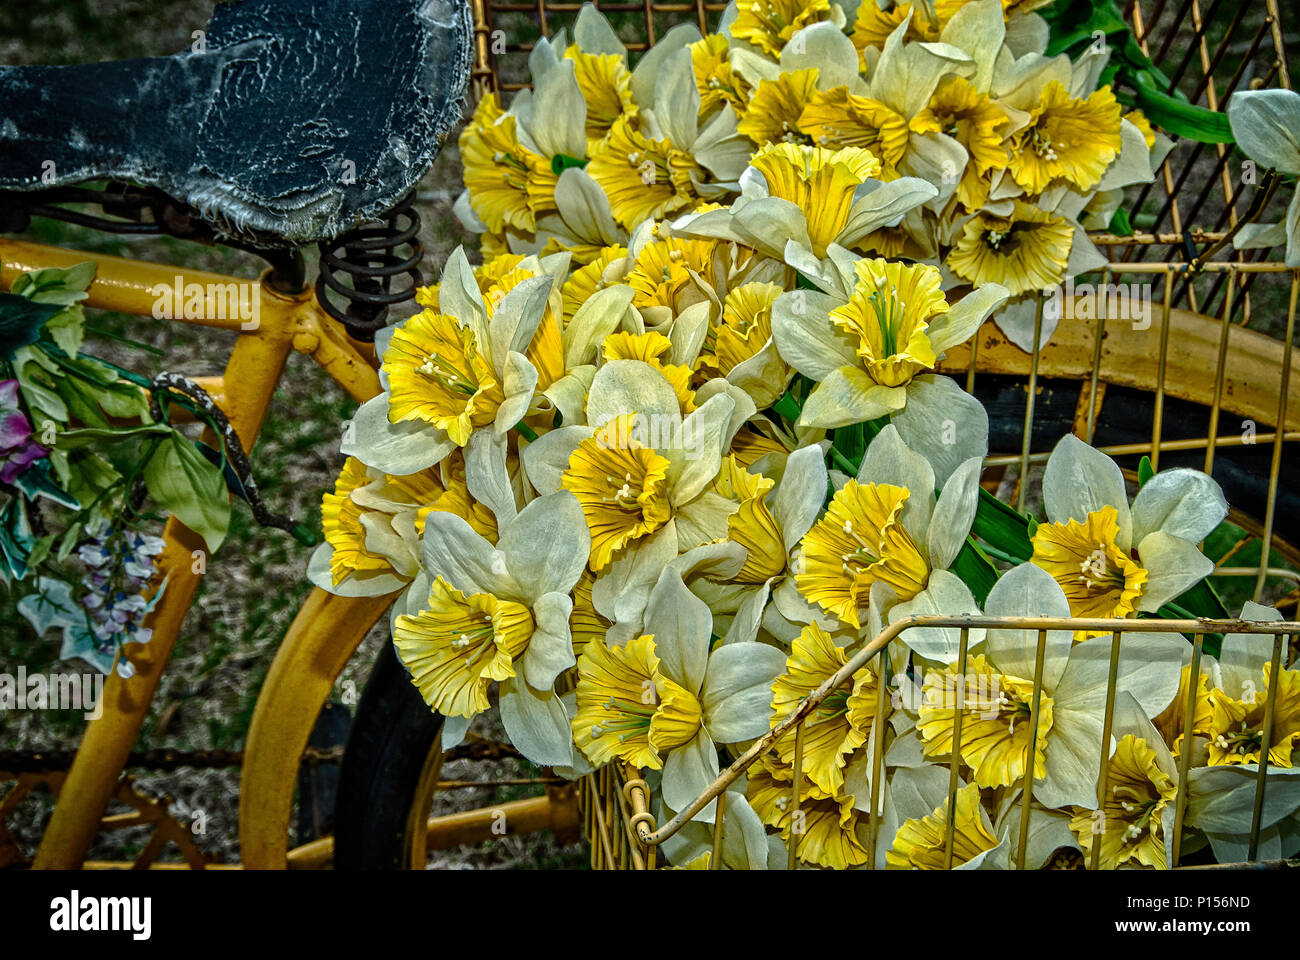 Landscaping Ideas Stock Photos & Landscaping Ideas Stock Images - Alamy